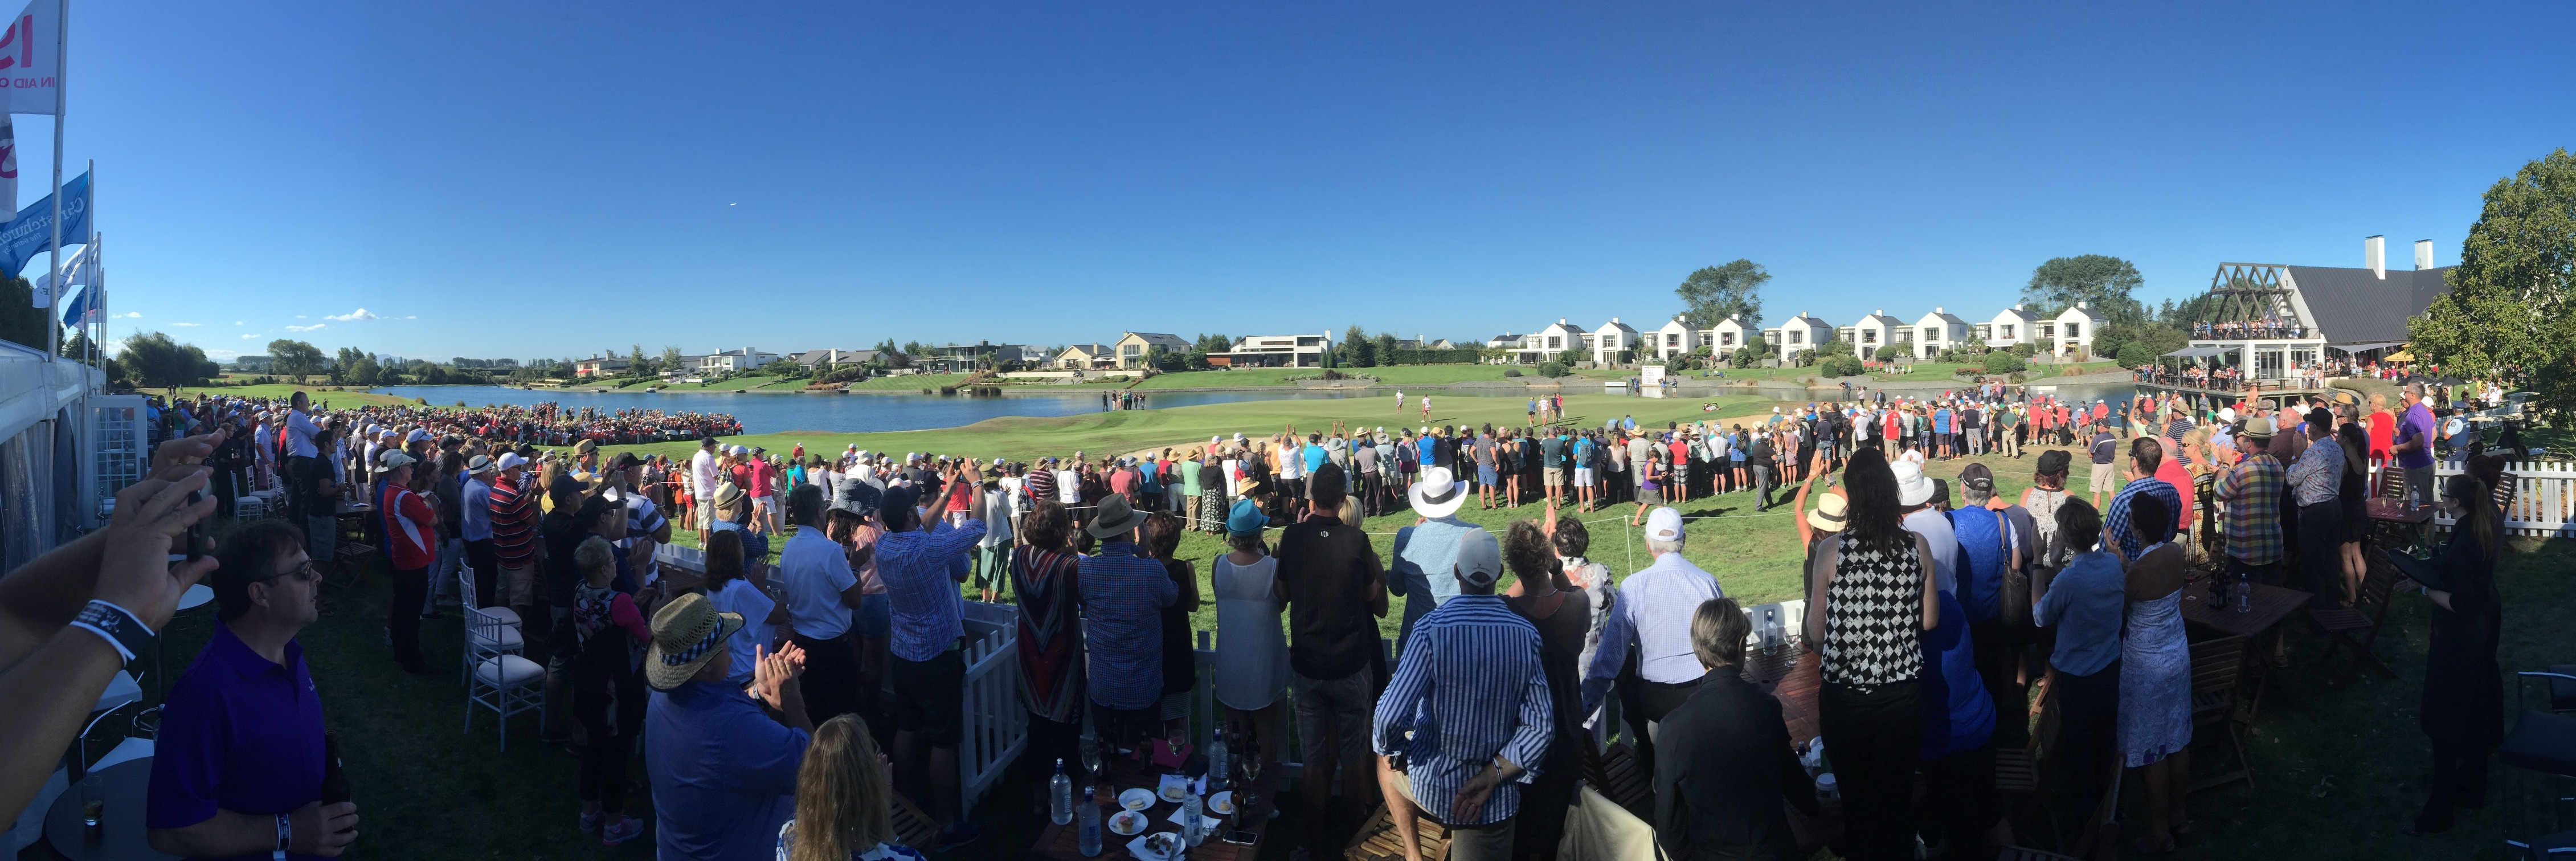 2015 NZWO - Final Hole crowd